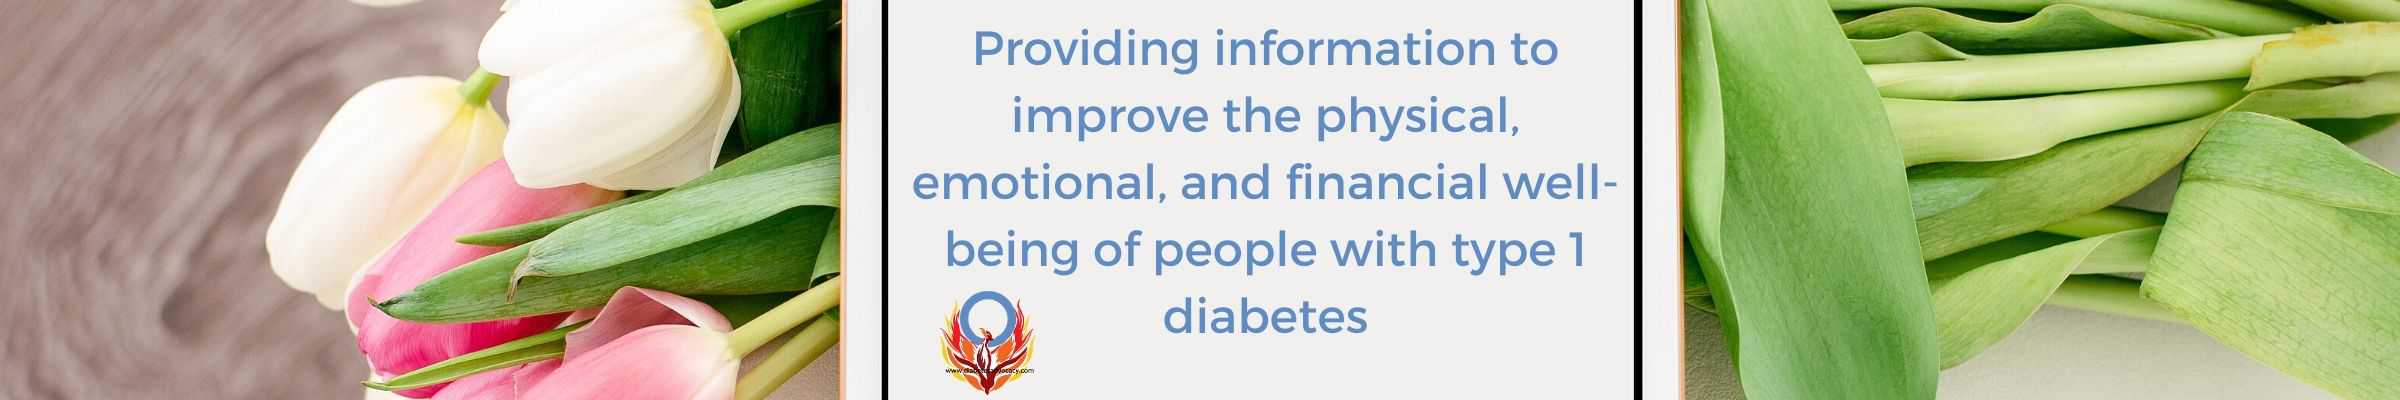 diabetes advocacy banner (1)